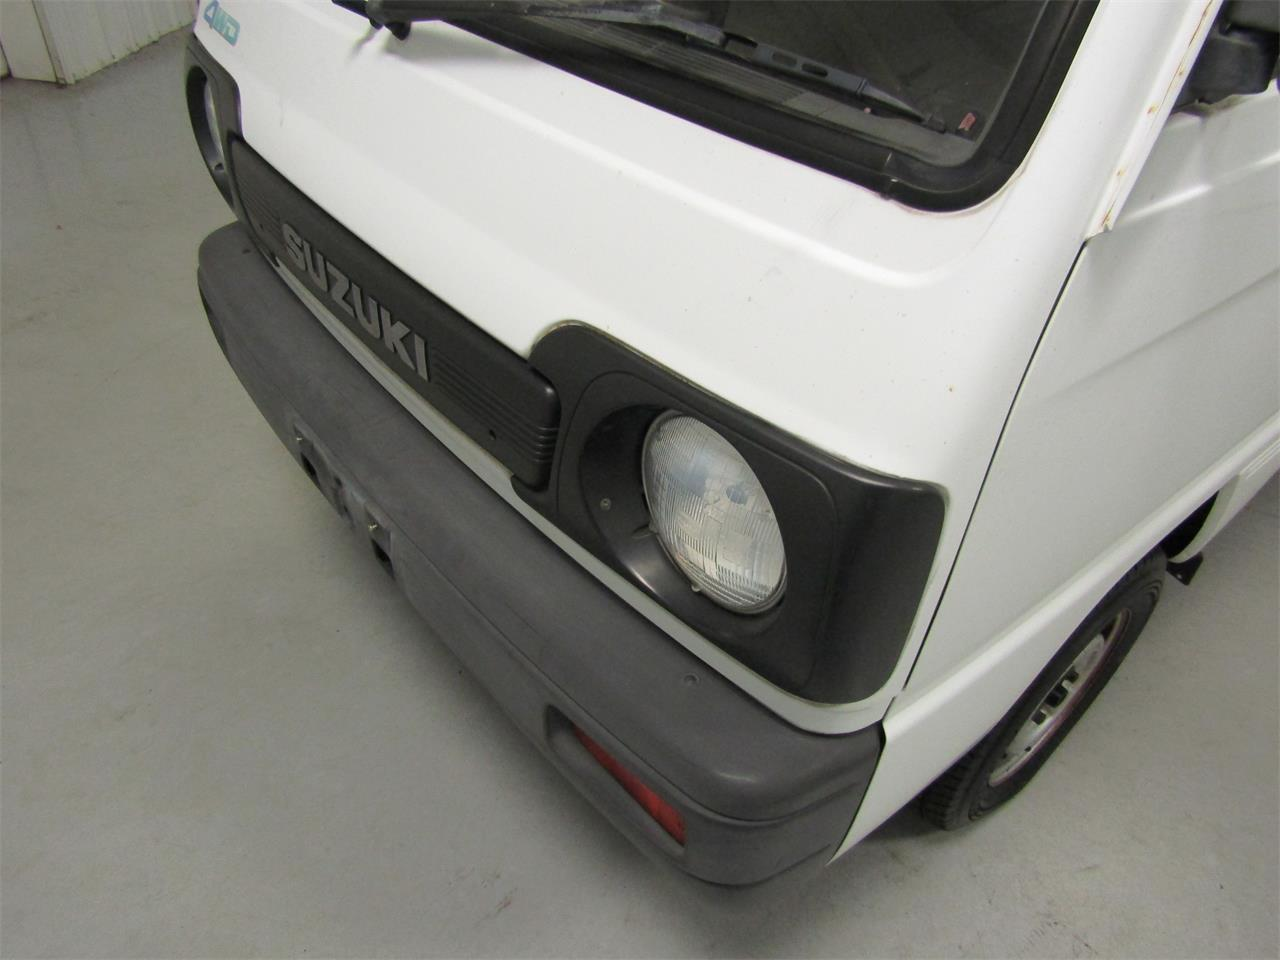 1991 Suzuki Carry for sale in Christiansburg, VA – photo 26